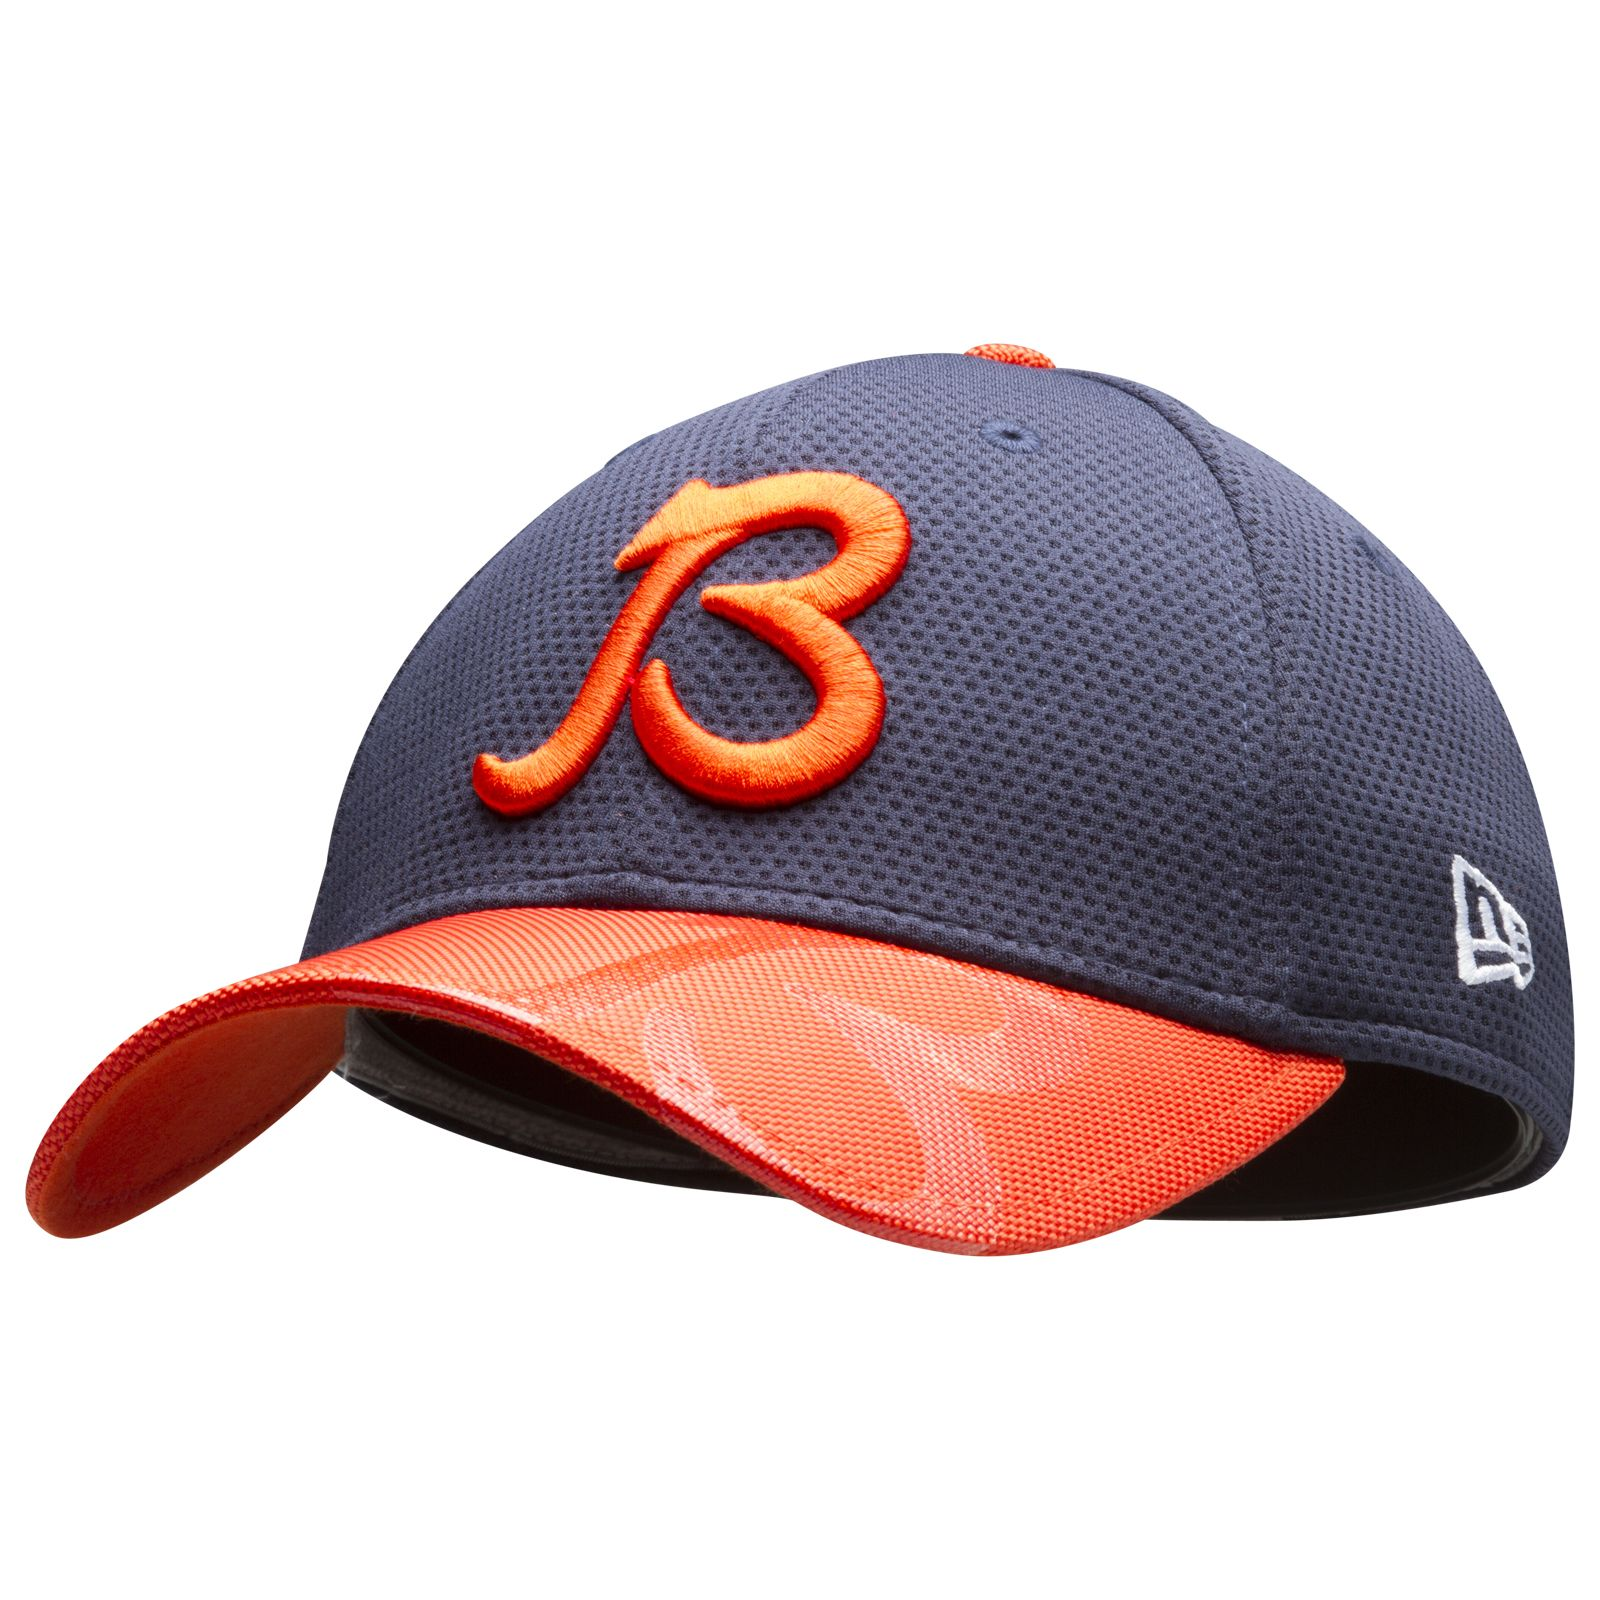 sale retailer dc864 687f9 ... real chicago bears navy and orange b logo 2016 sideline shield flex fit  hat by a8df2 best product image new era ...